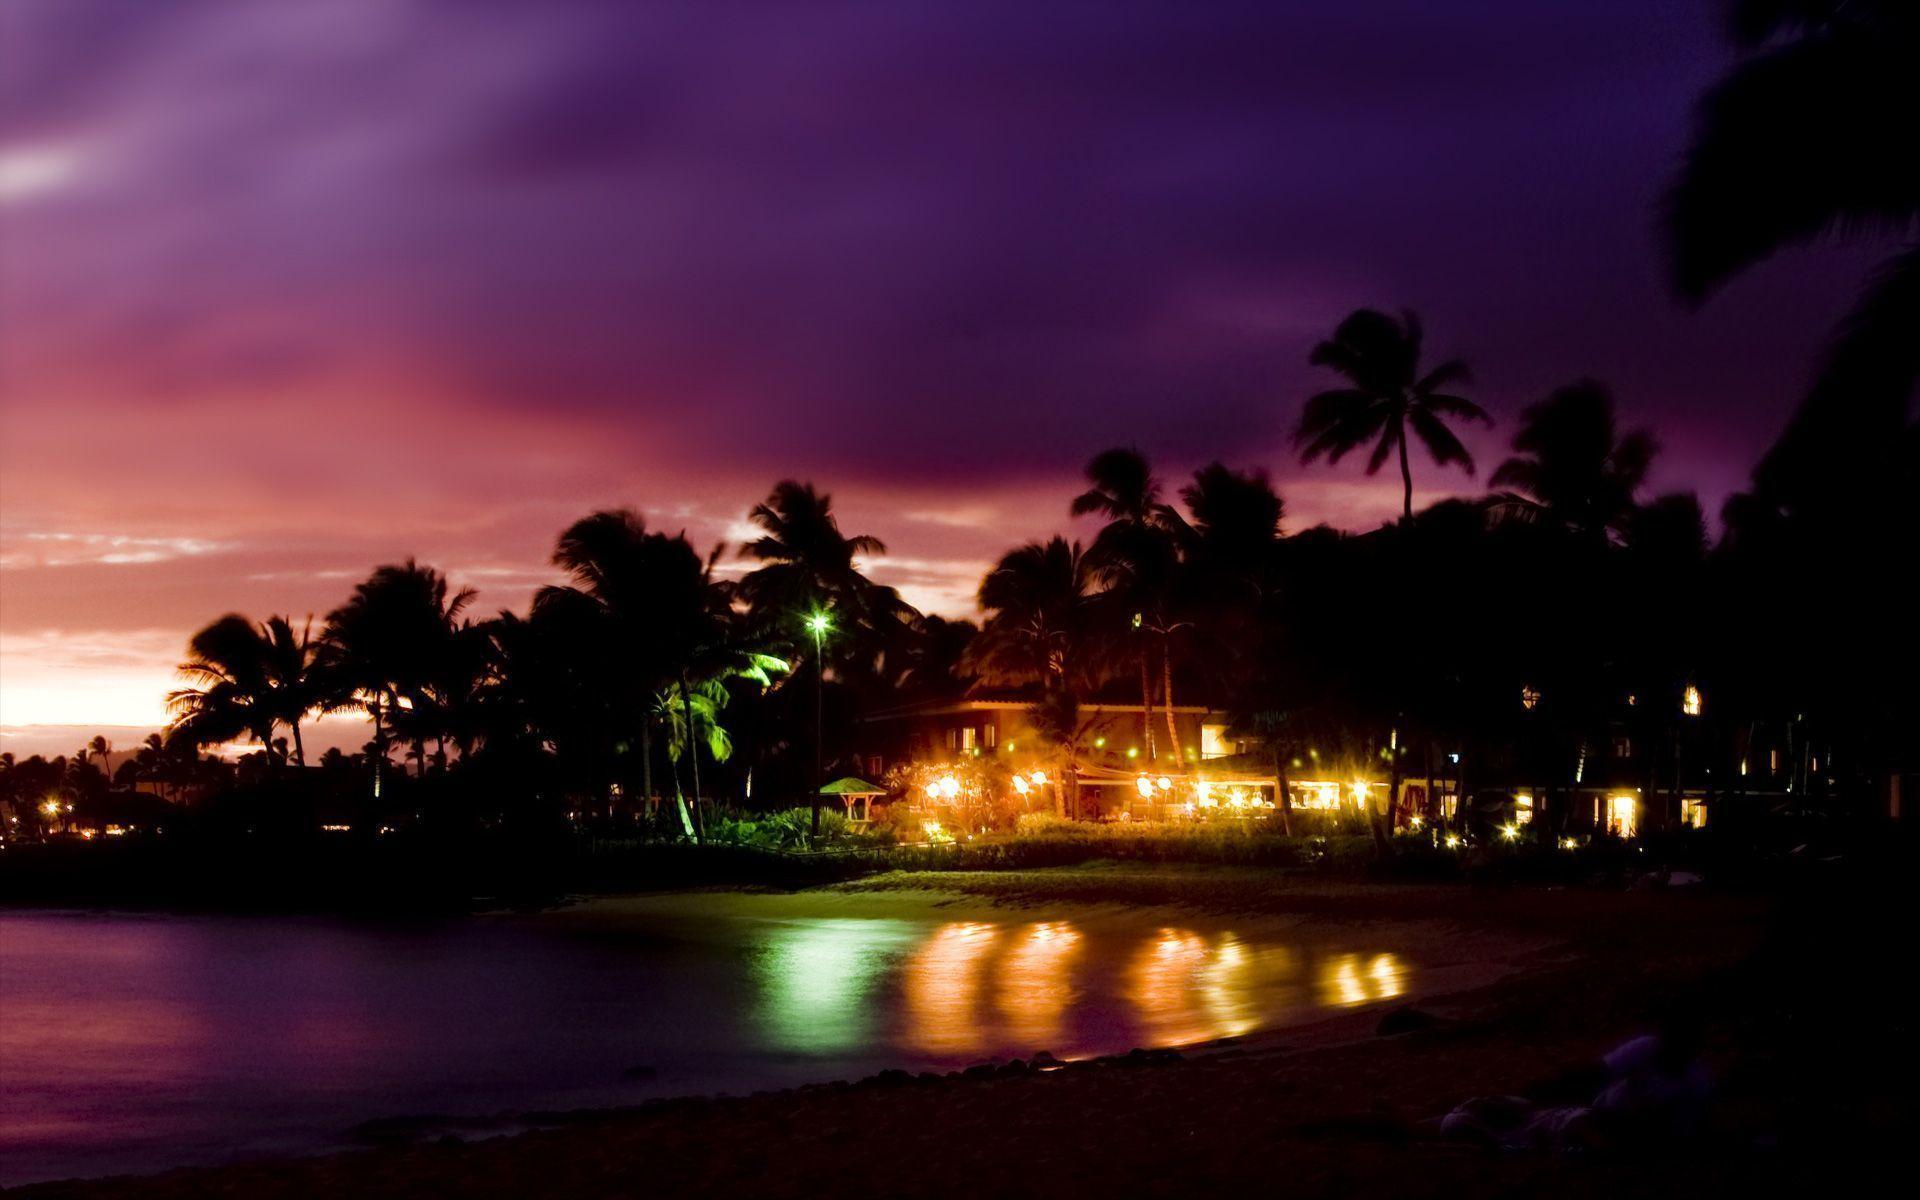 Hd Tropical Island Beach Paradise Wallpapers And Backgrounds: Beach At Night Wallpapers